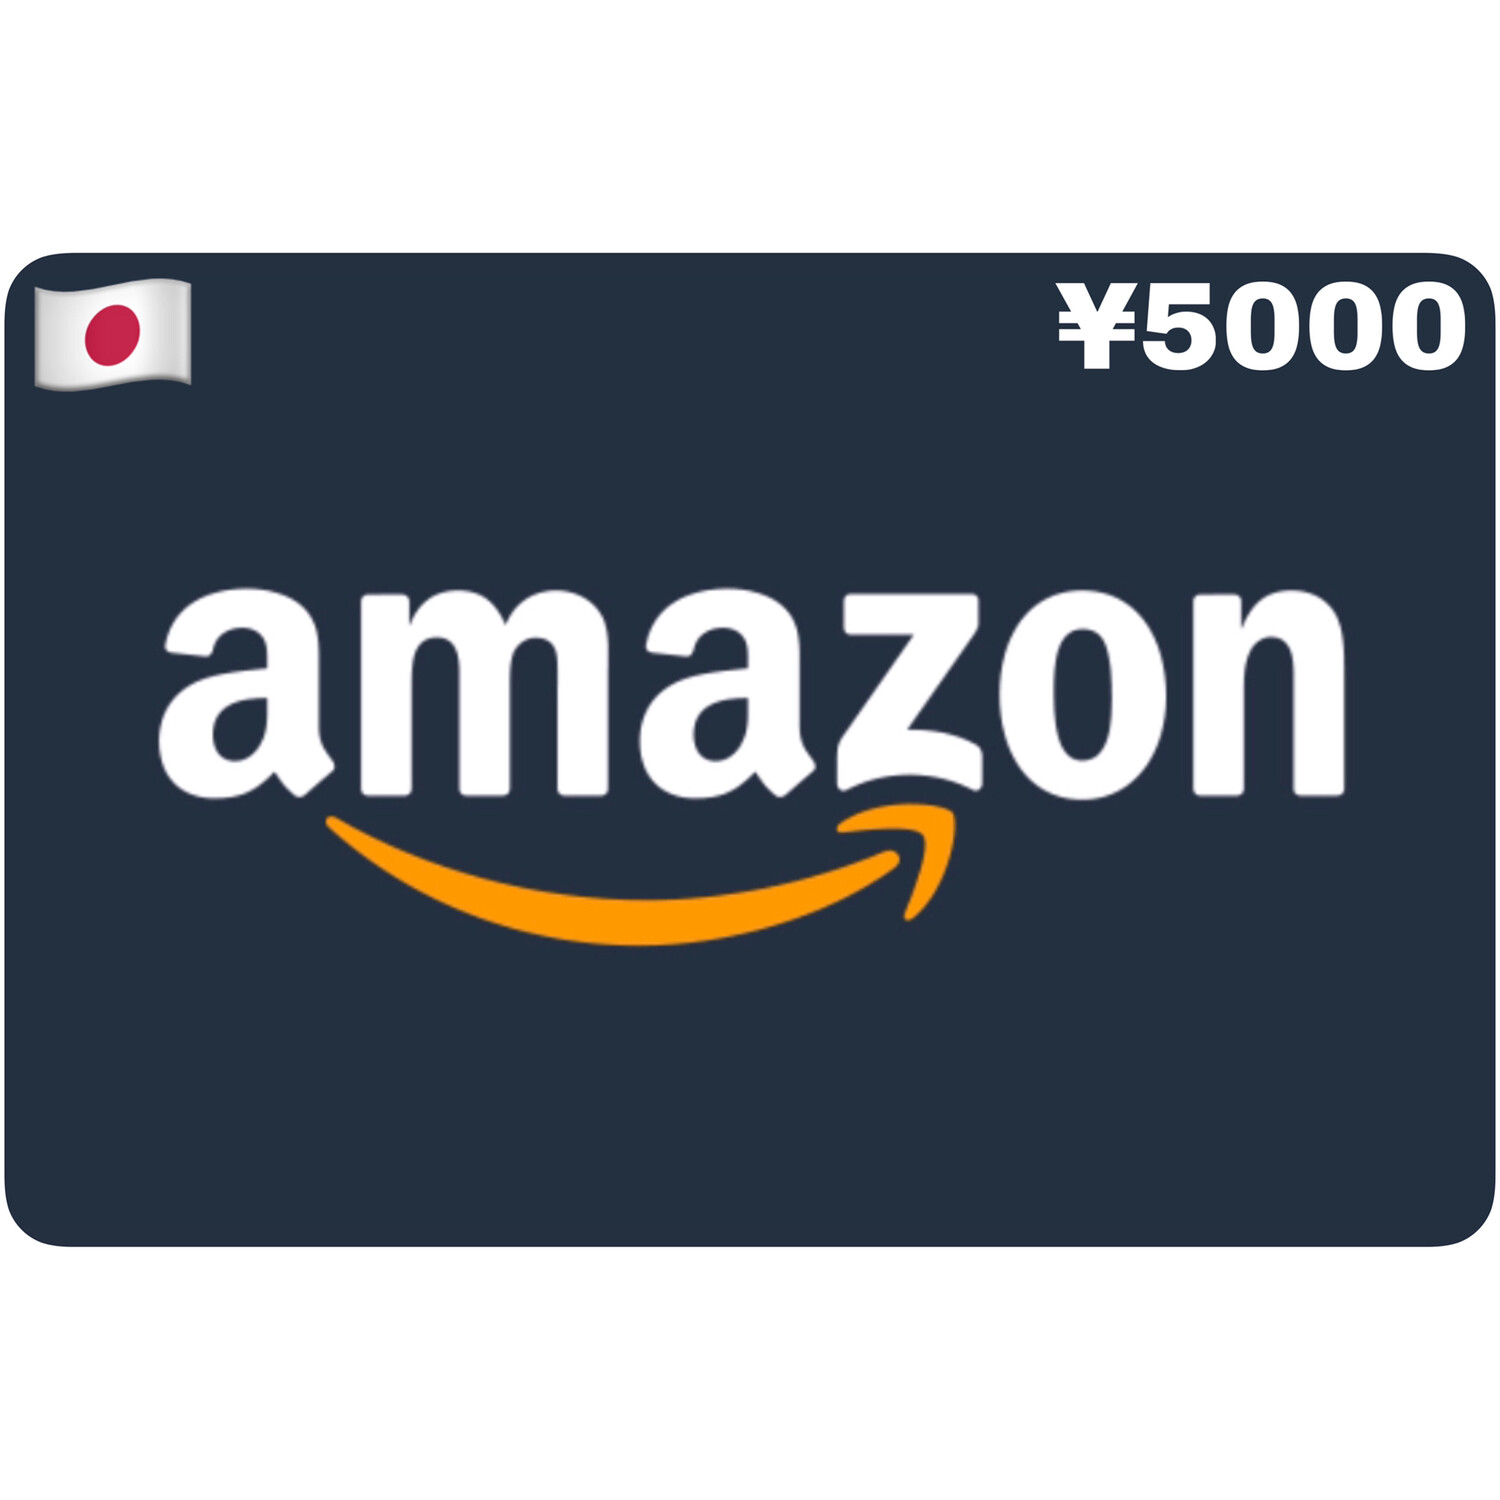 Amazon.co.jp Gift Card Japan ¥5000 Yen